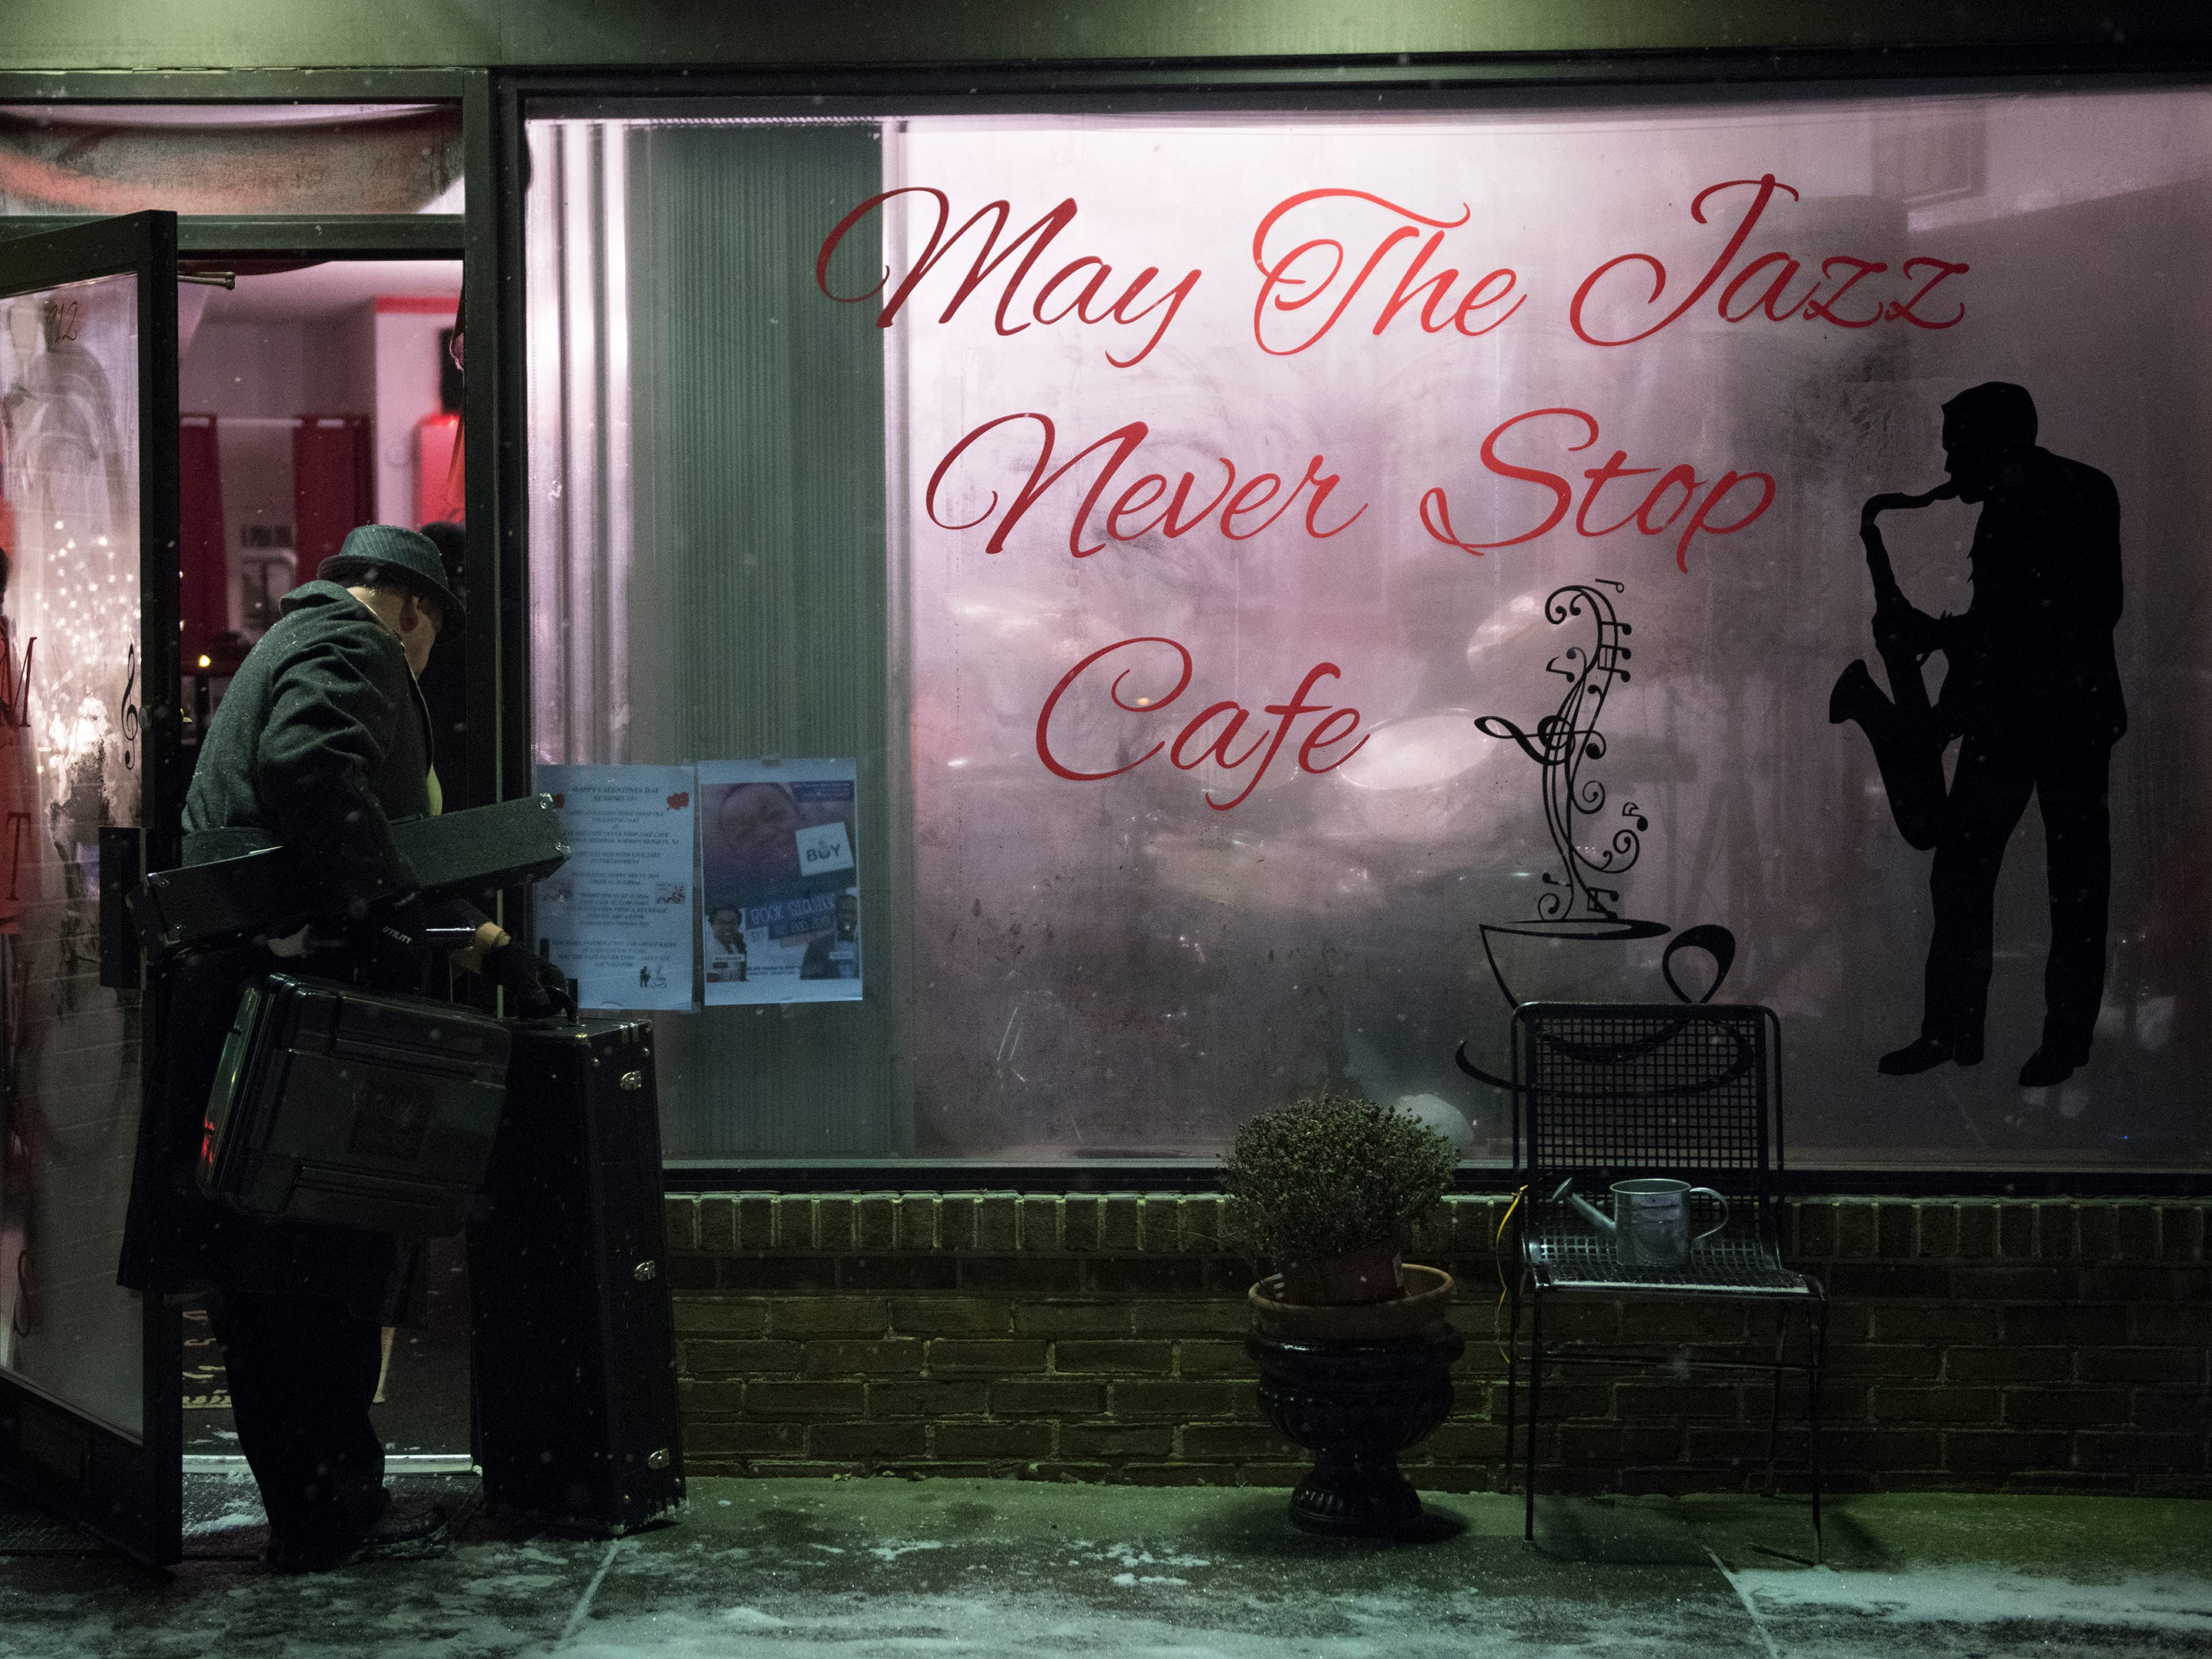 Jazz musician Dave Dowell of Atco carries his gear into May the Jazz Never Stop Jazz Cafe, prior to performing at the Haddon Heights jazz cafe.